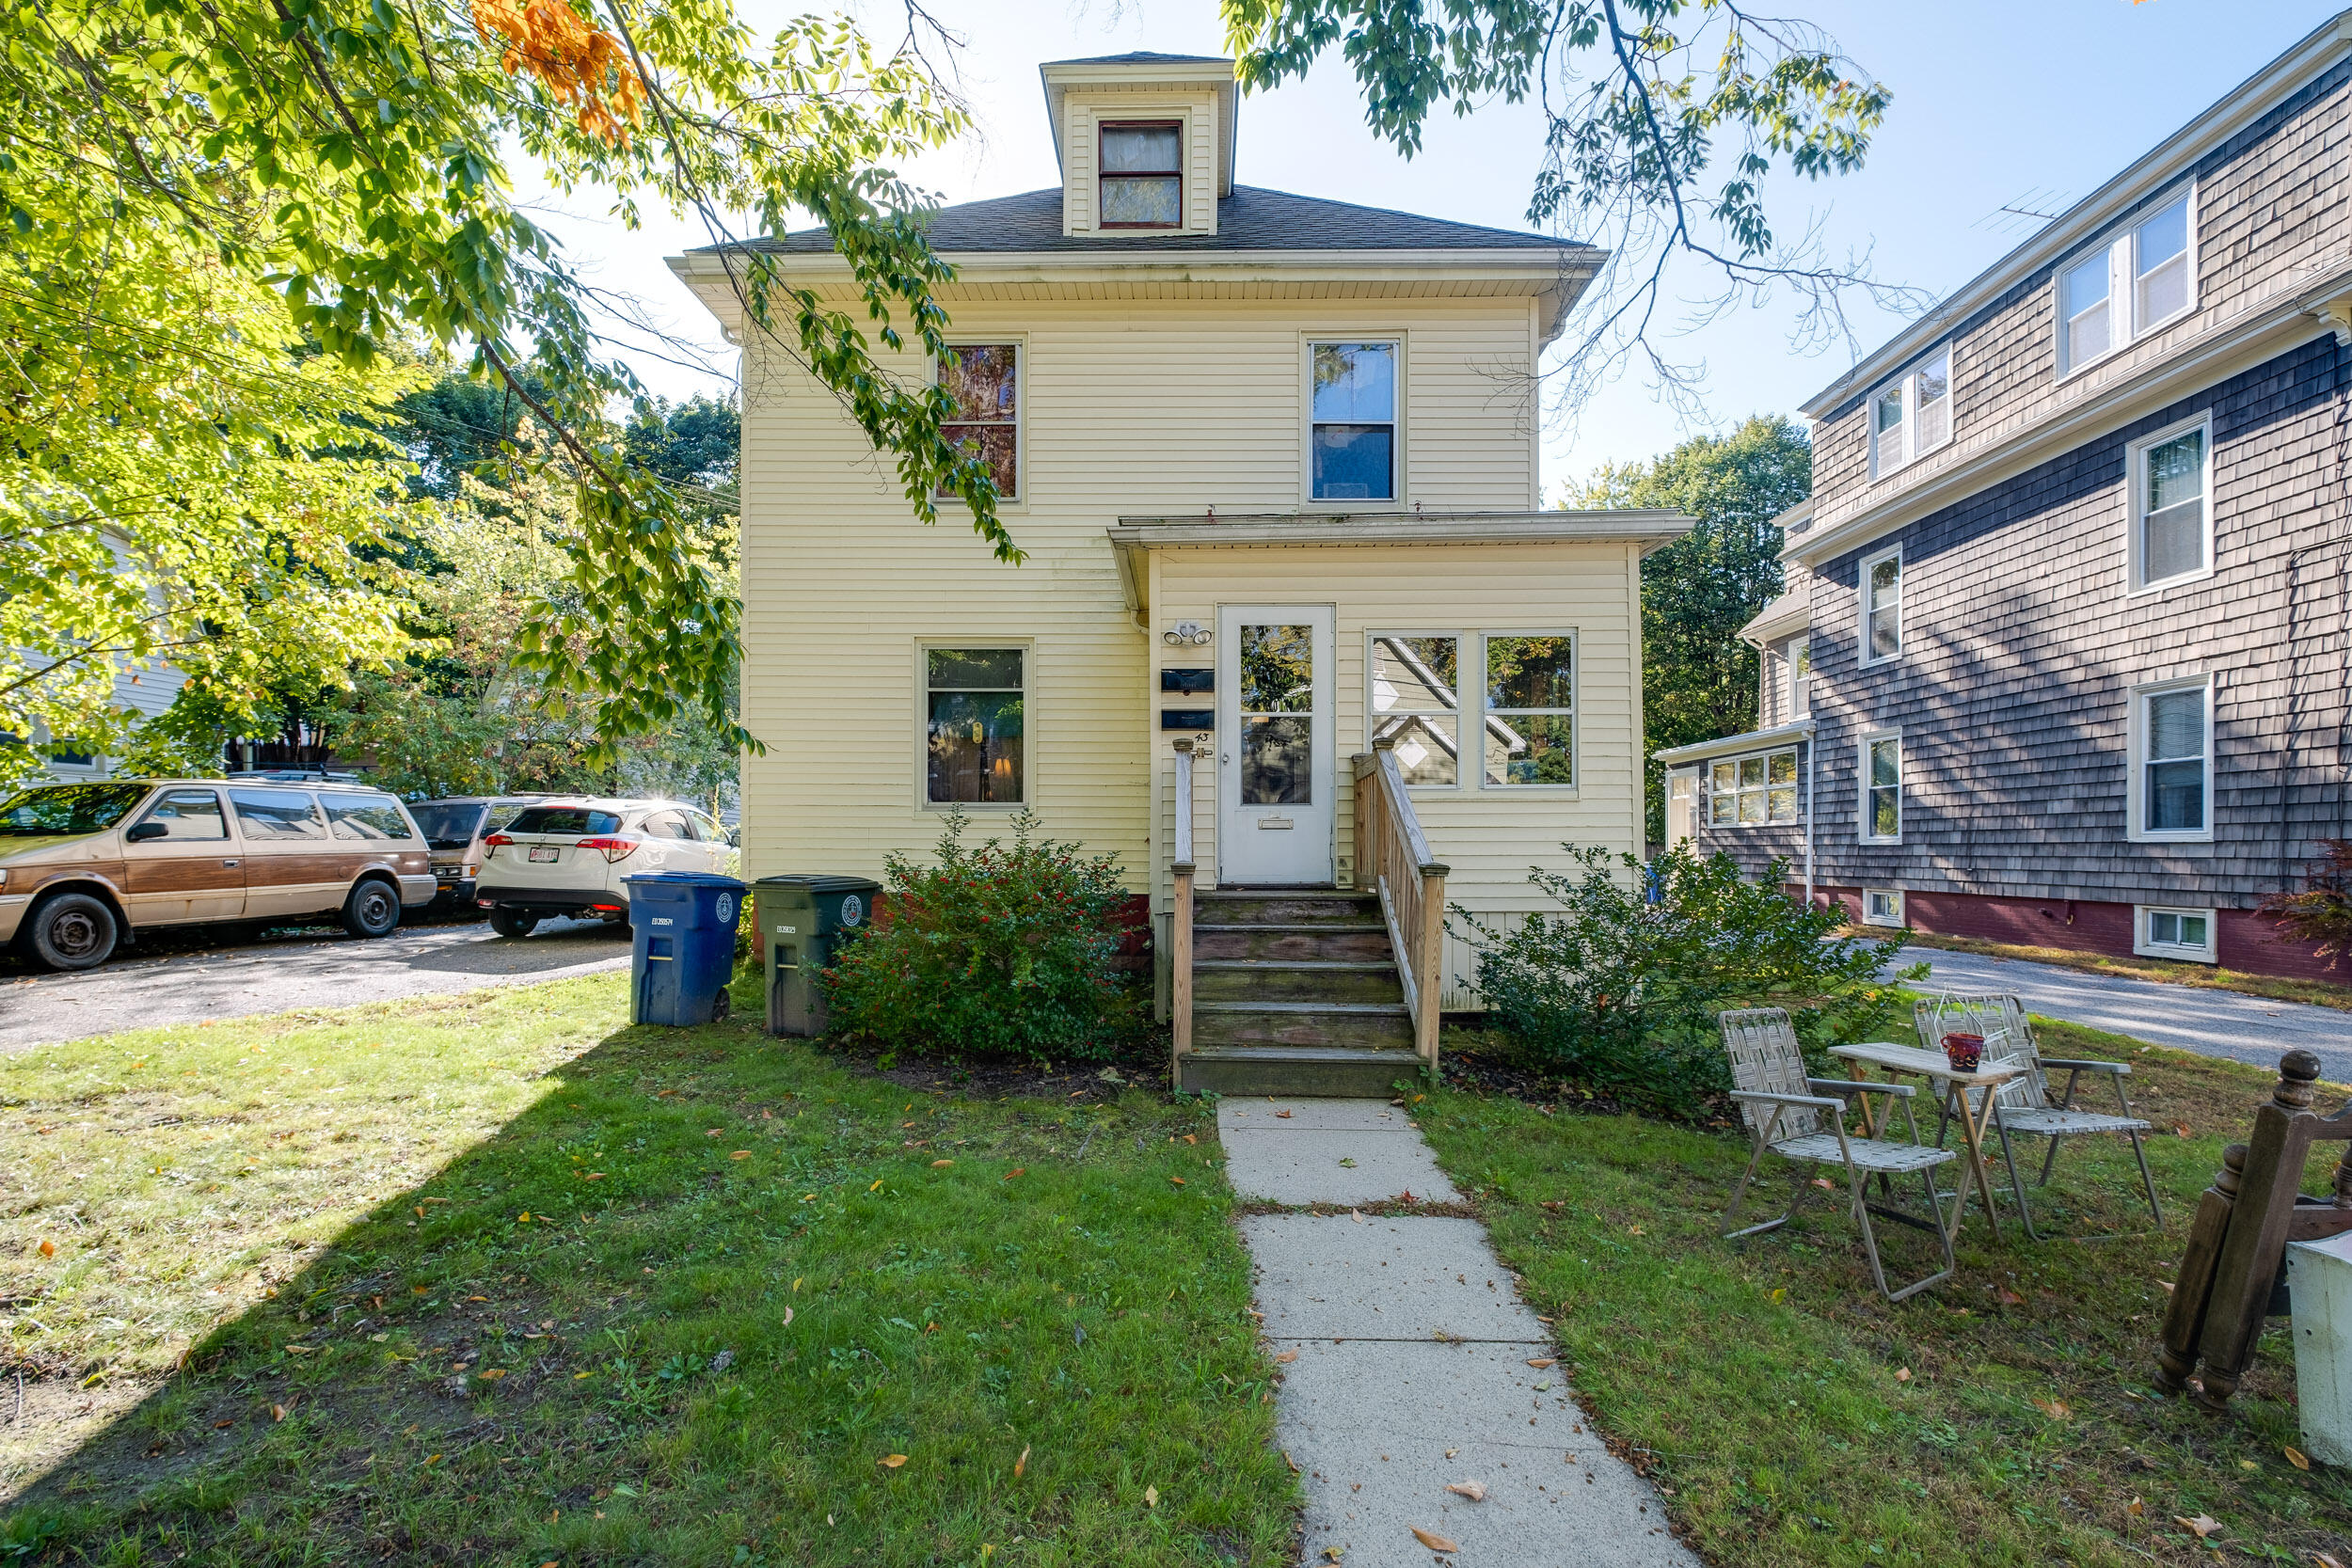 Main image for MLS listing 1512165